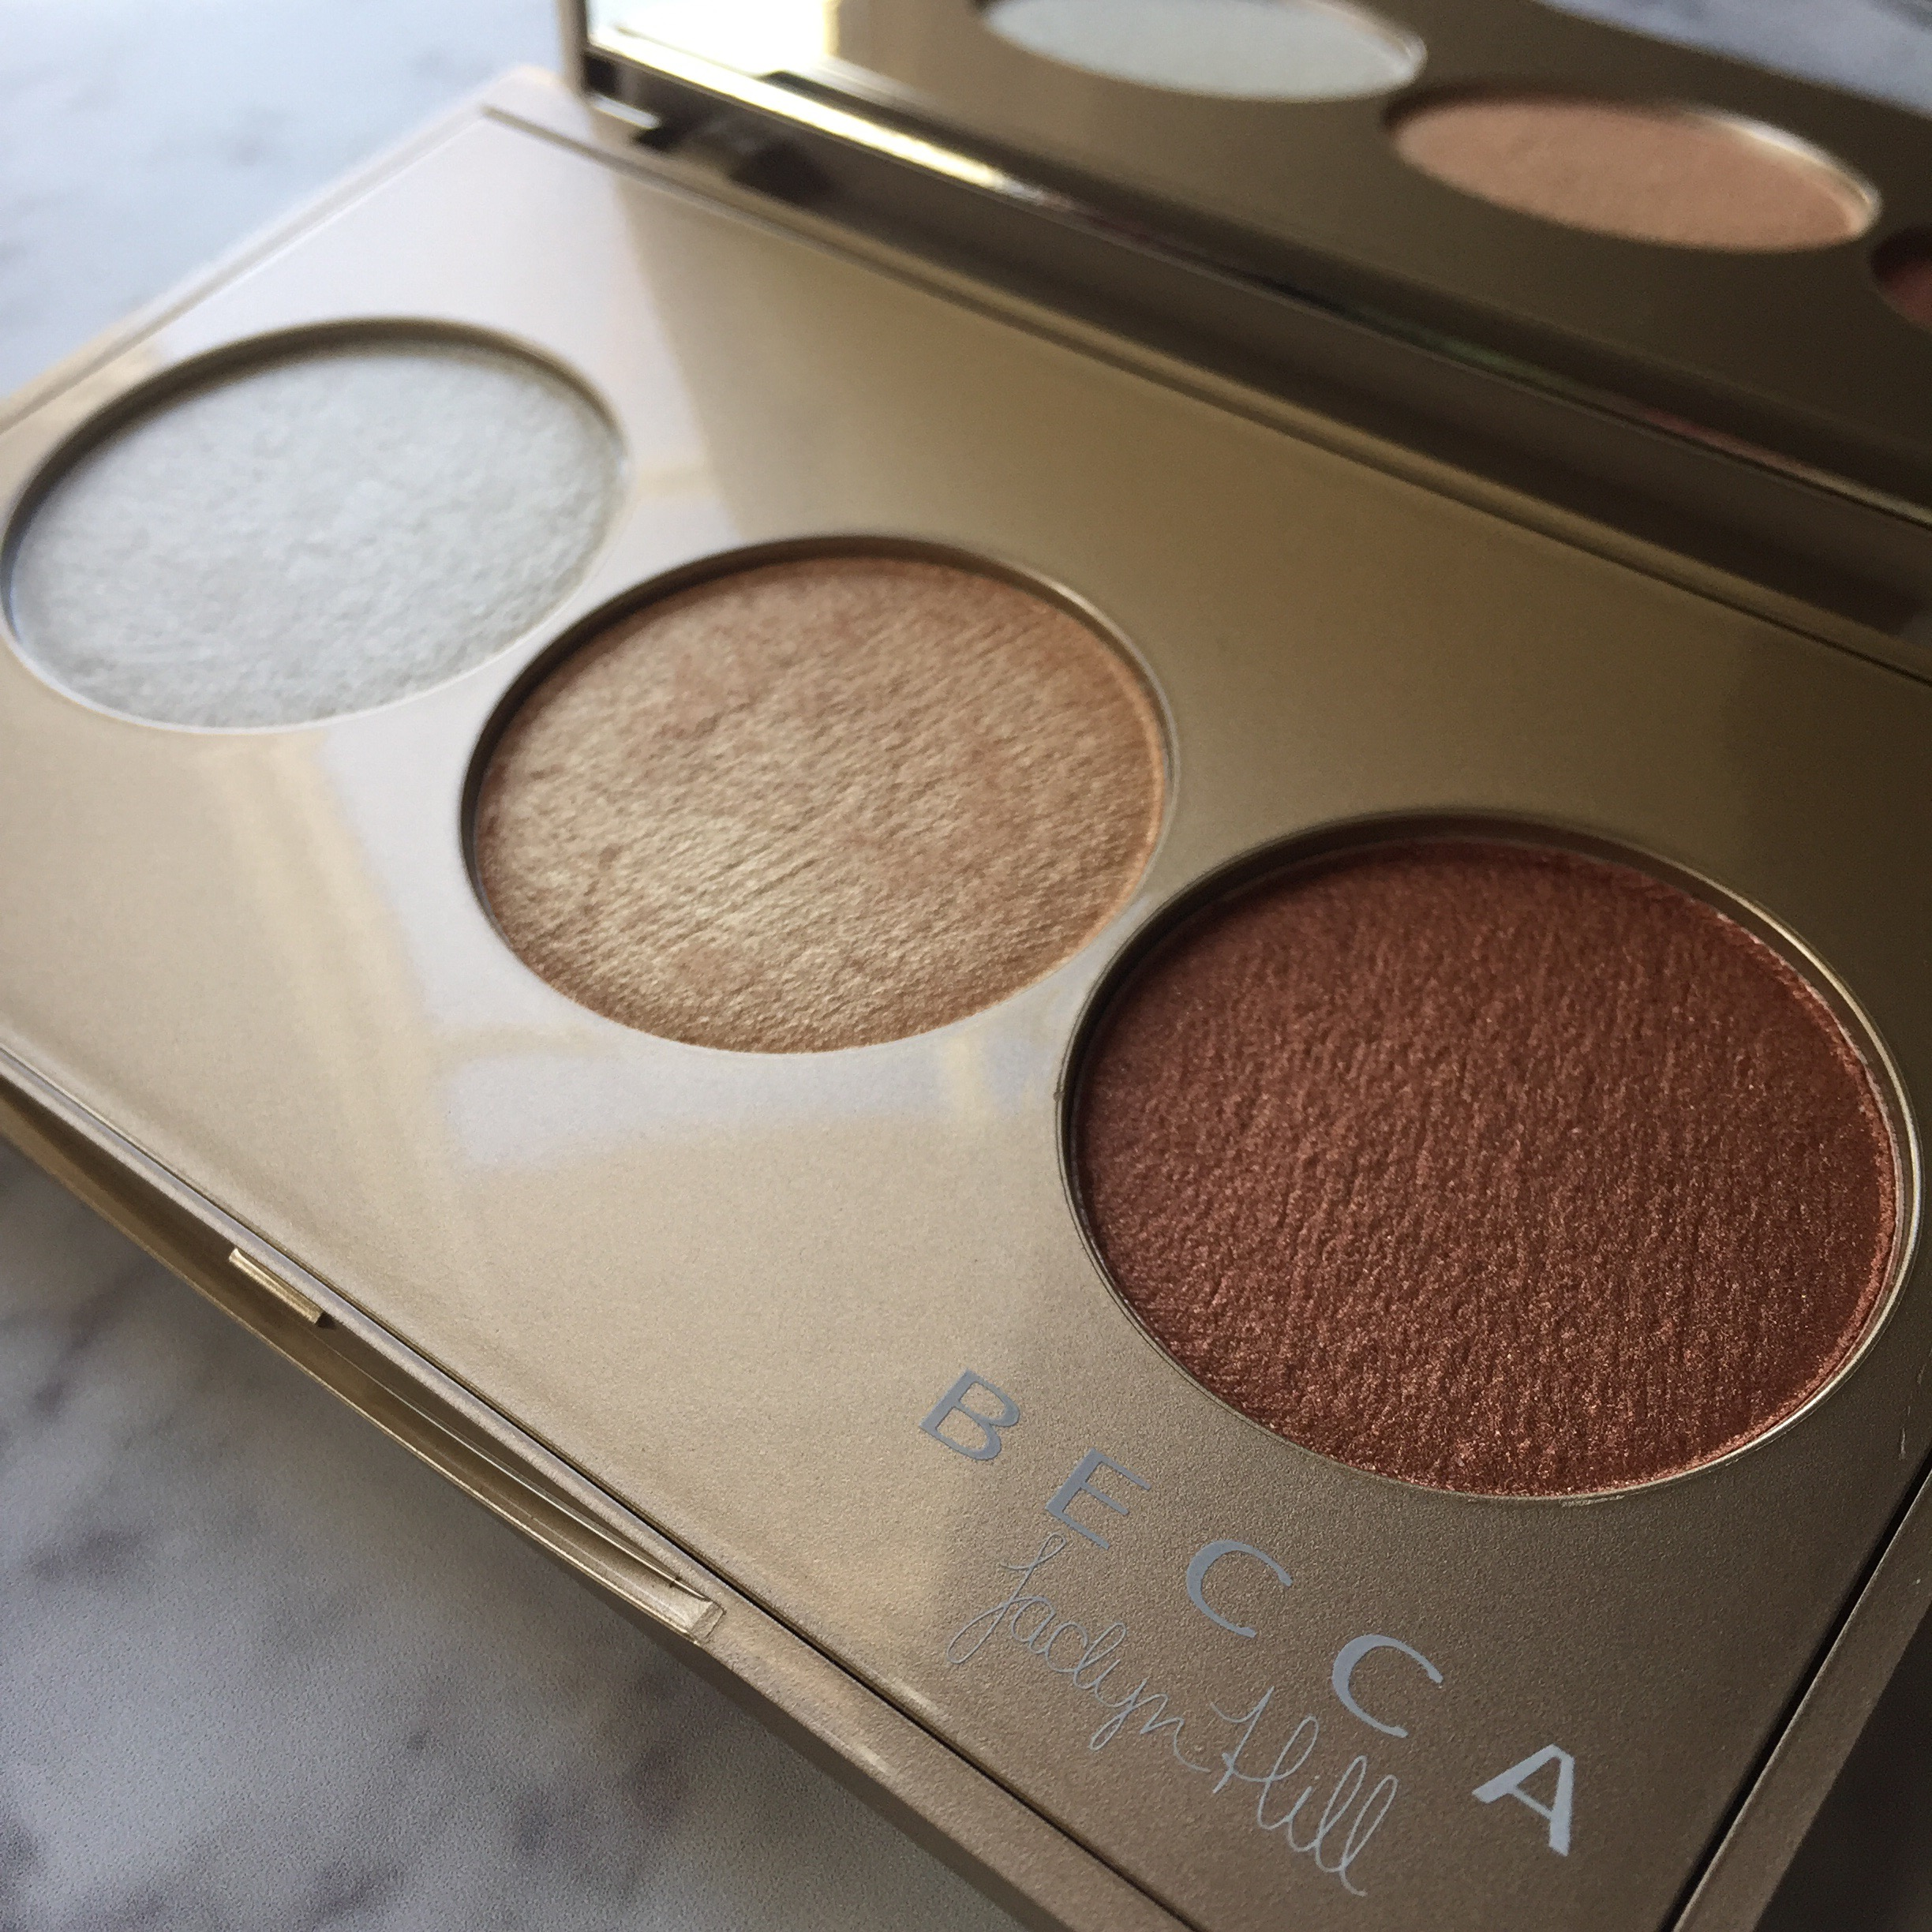 BECCA Shimmering Skin Perfector® Pressed Champagne Glow Palette featuring Champagne Pop x Jaclyn Hill